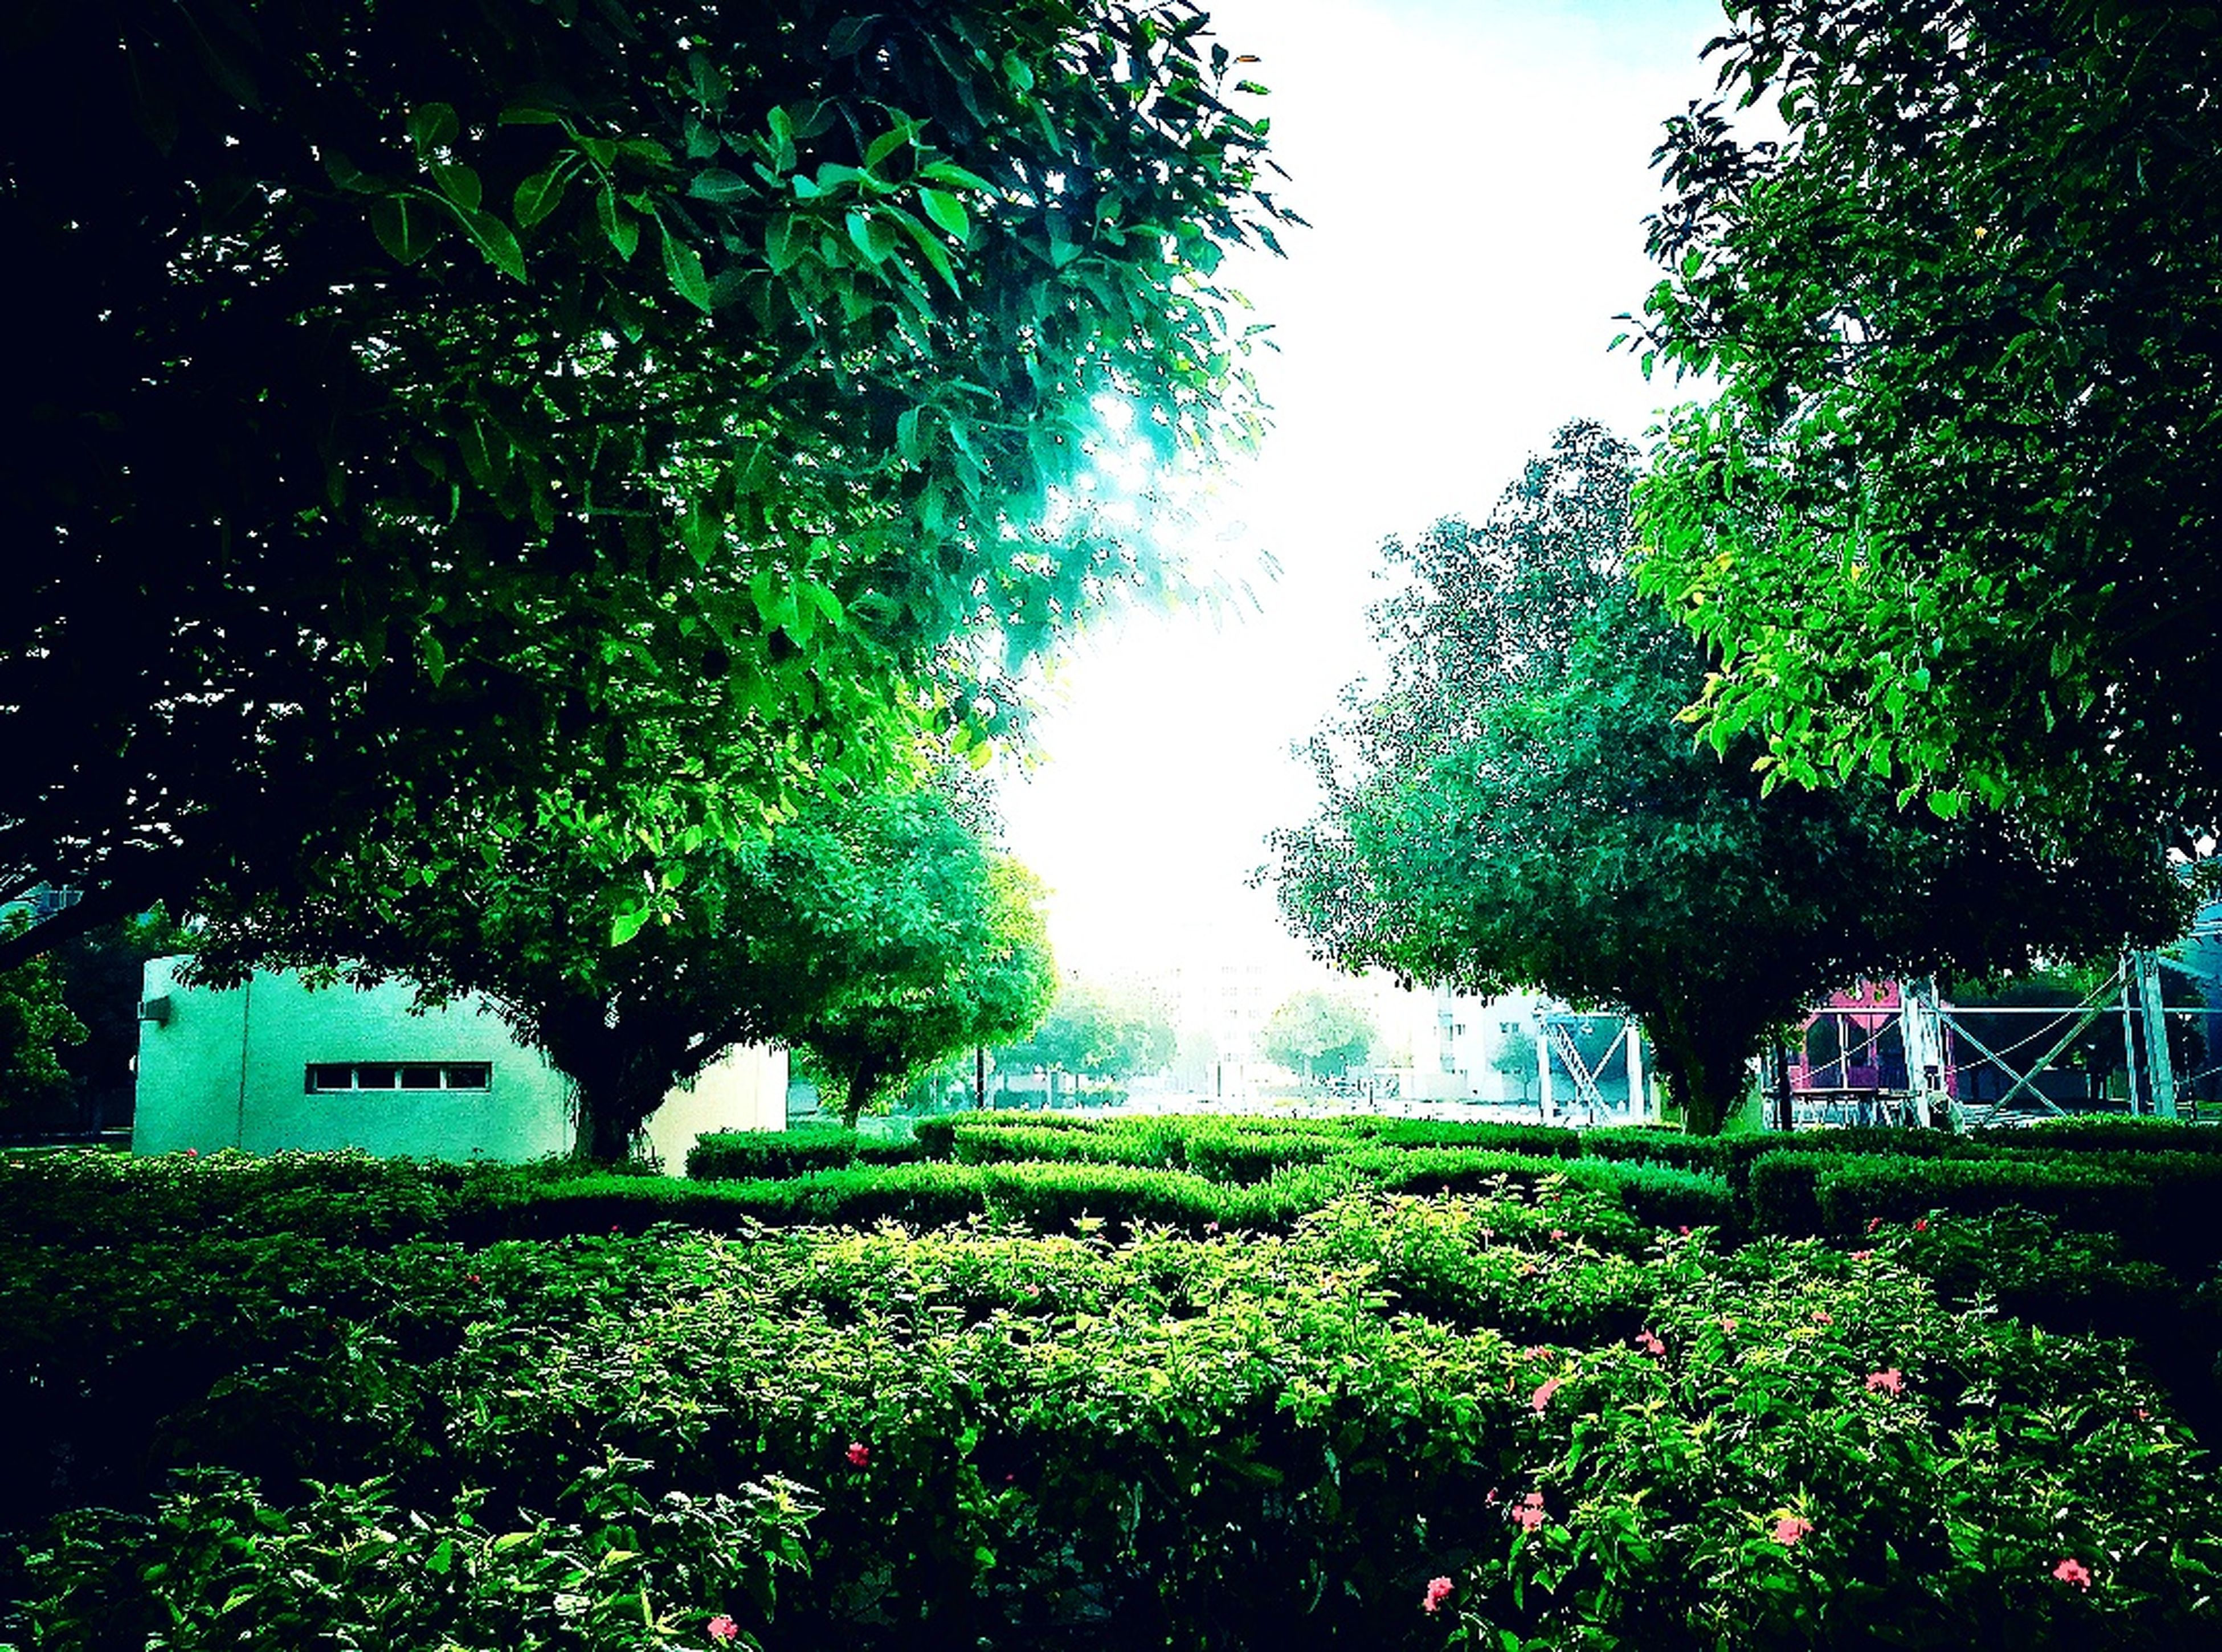 tree, green color, growth, nature, lush foliage, day, outdoors, beauty in nature, no people, plant, tranquility, built structure, architecture, scenics, grass, sky